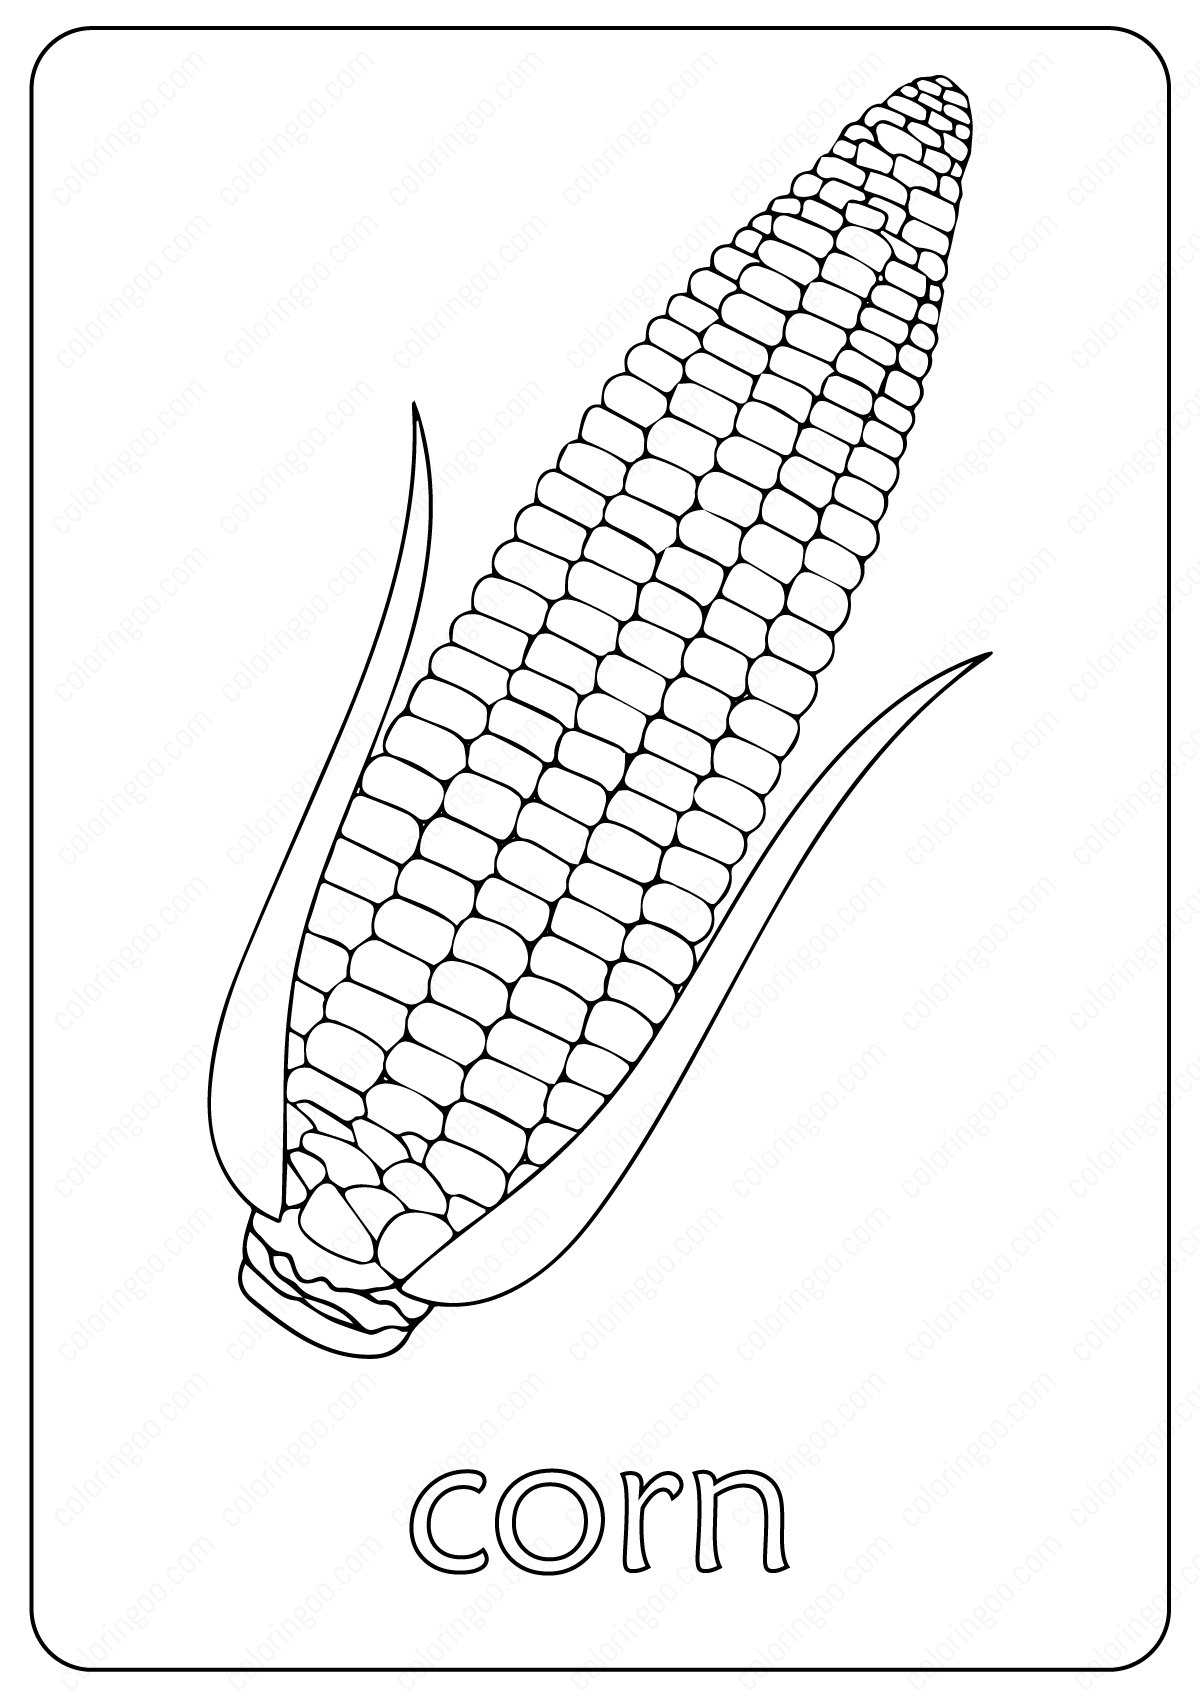 Free Printable Corn Maize Coloring Pages (With images